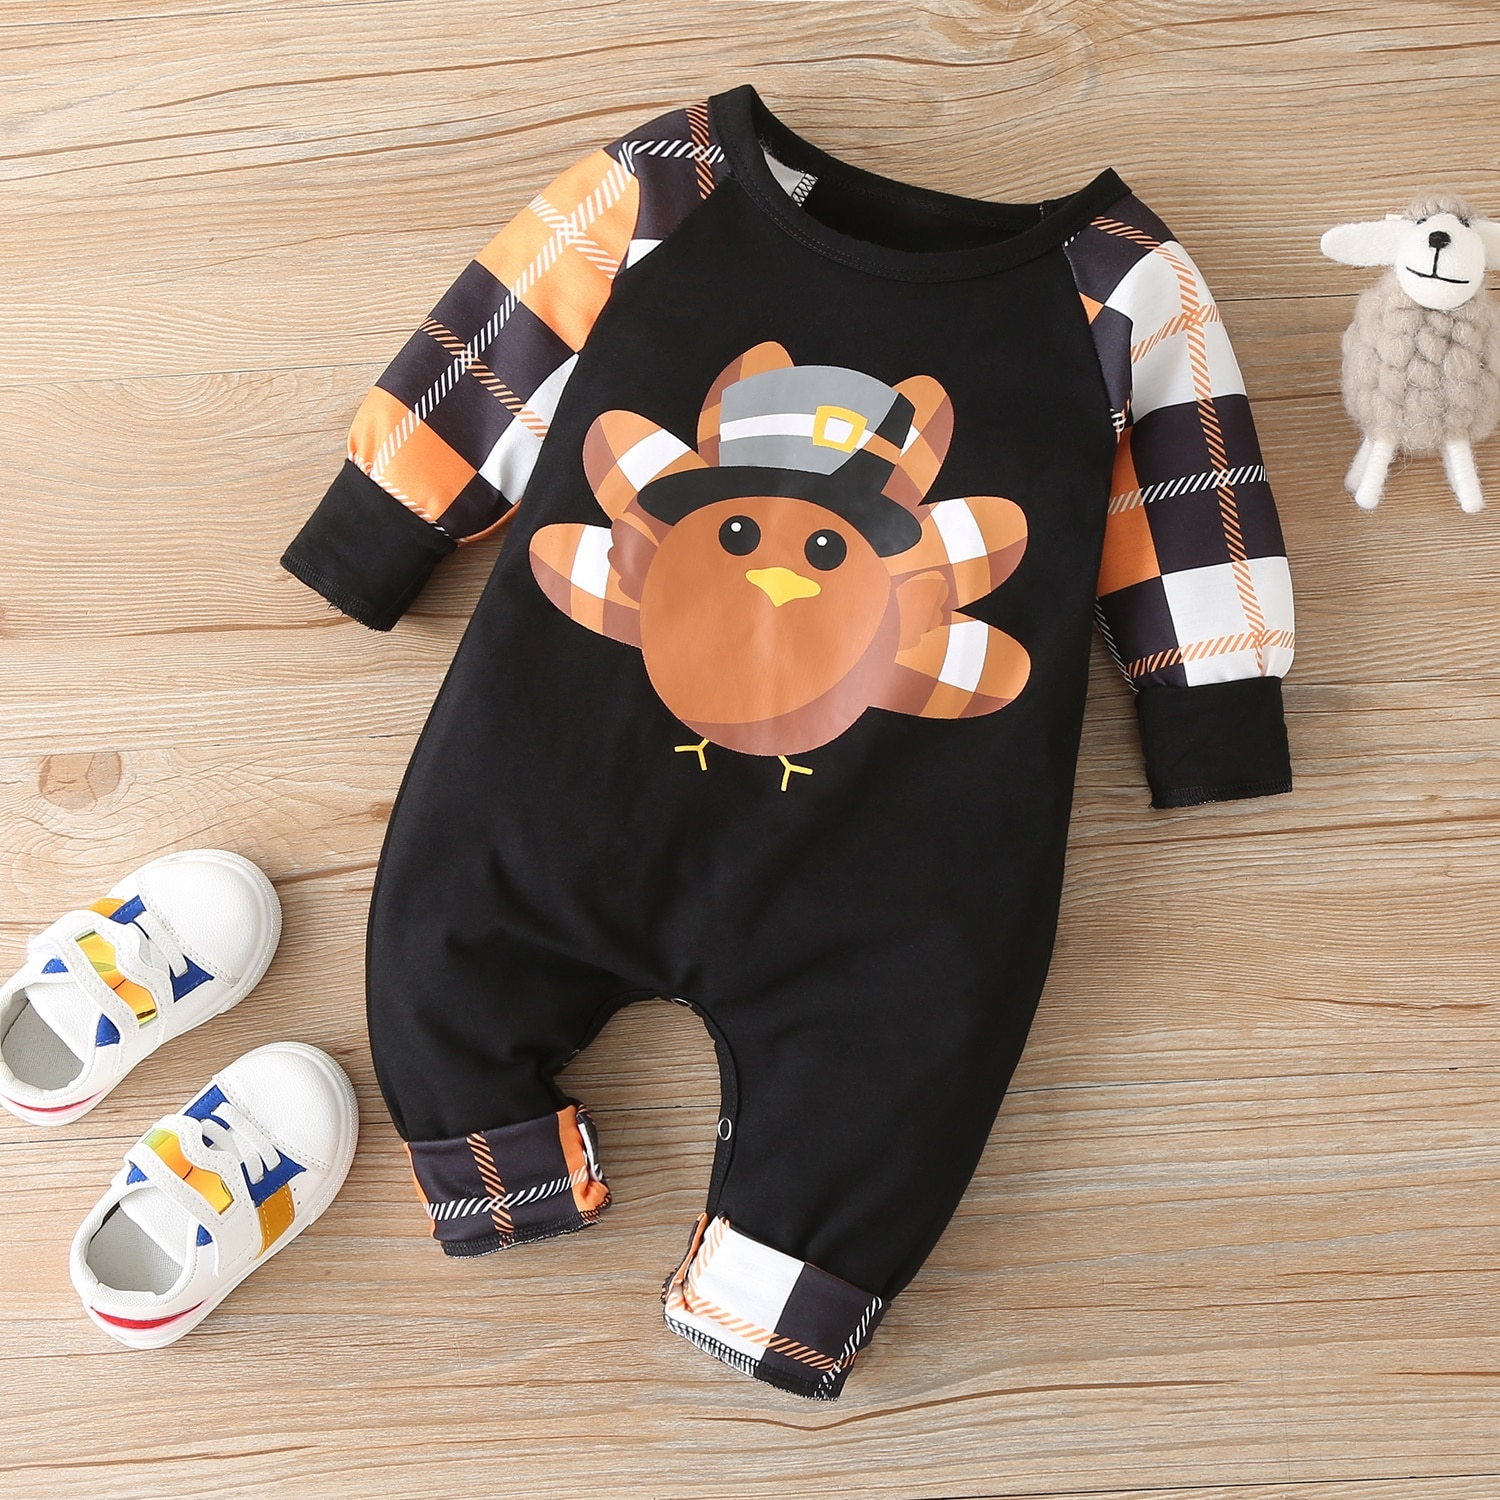 Fashion Thanksgiving Clothes Winter Fall Baby Boy Clothes Cotton Cartoon Turkey Patchwork Plaid Long Sleeve Baby Romper  0-18M